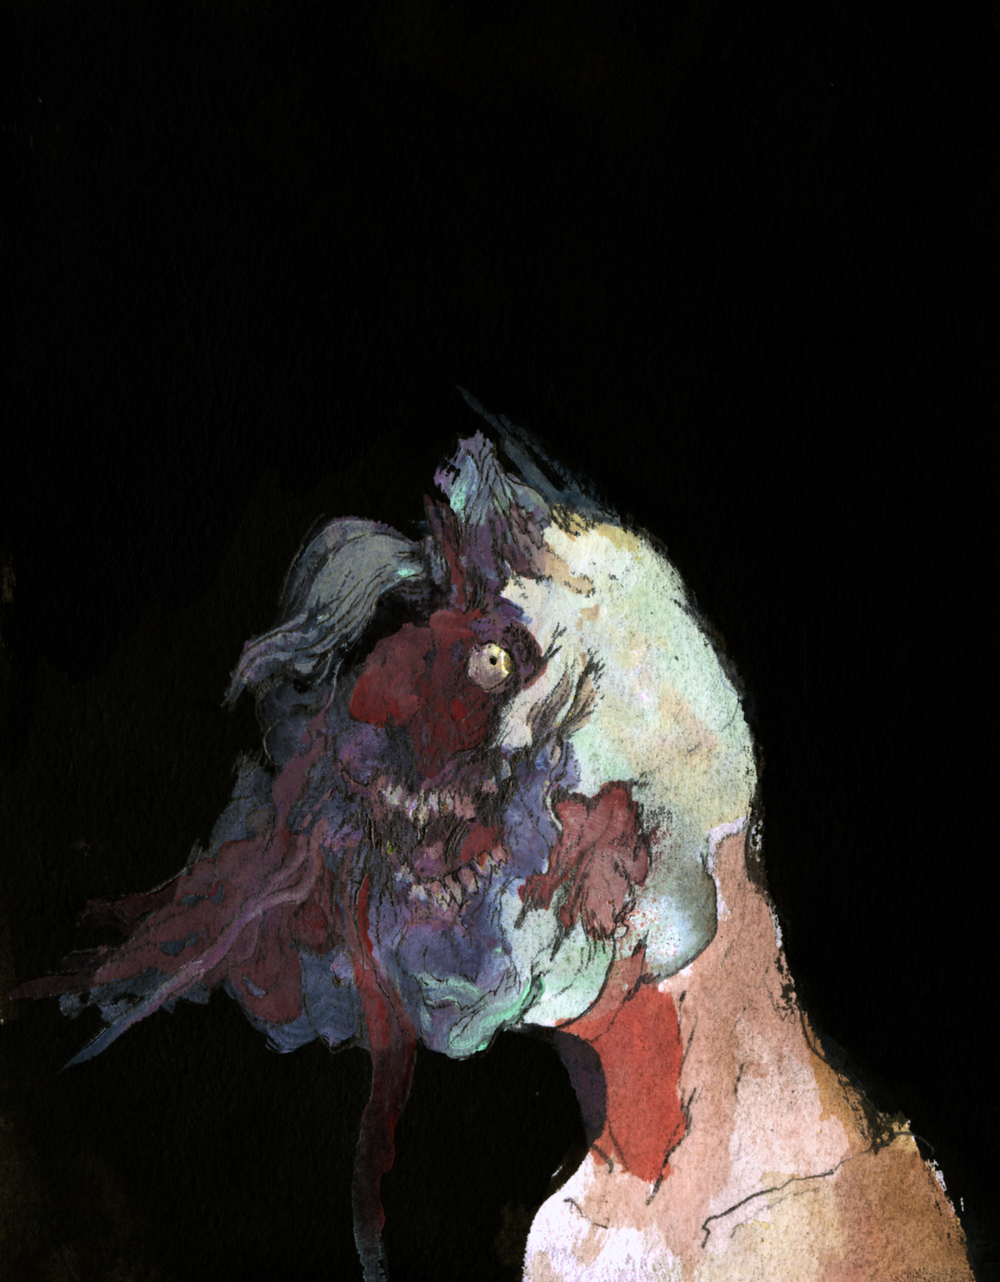 study for a caved in skull.